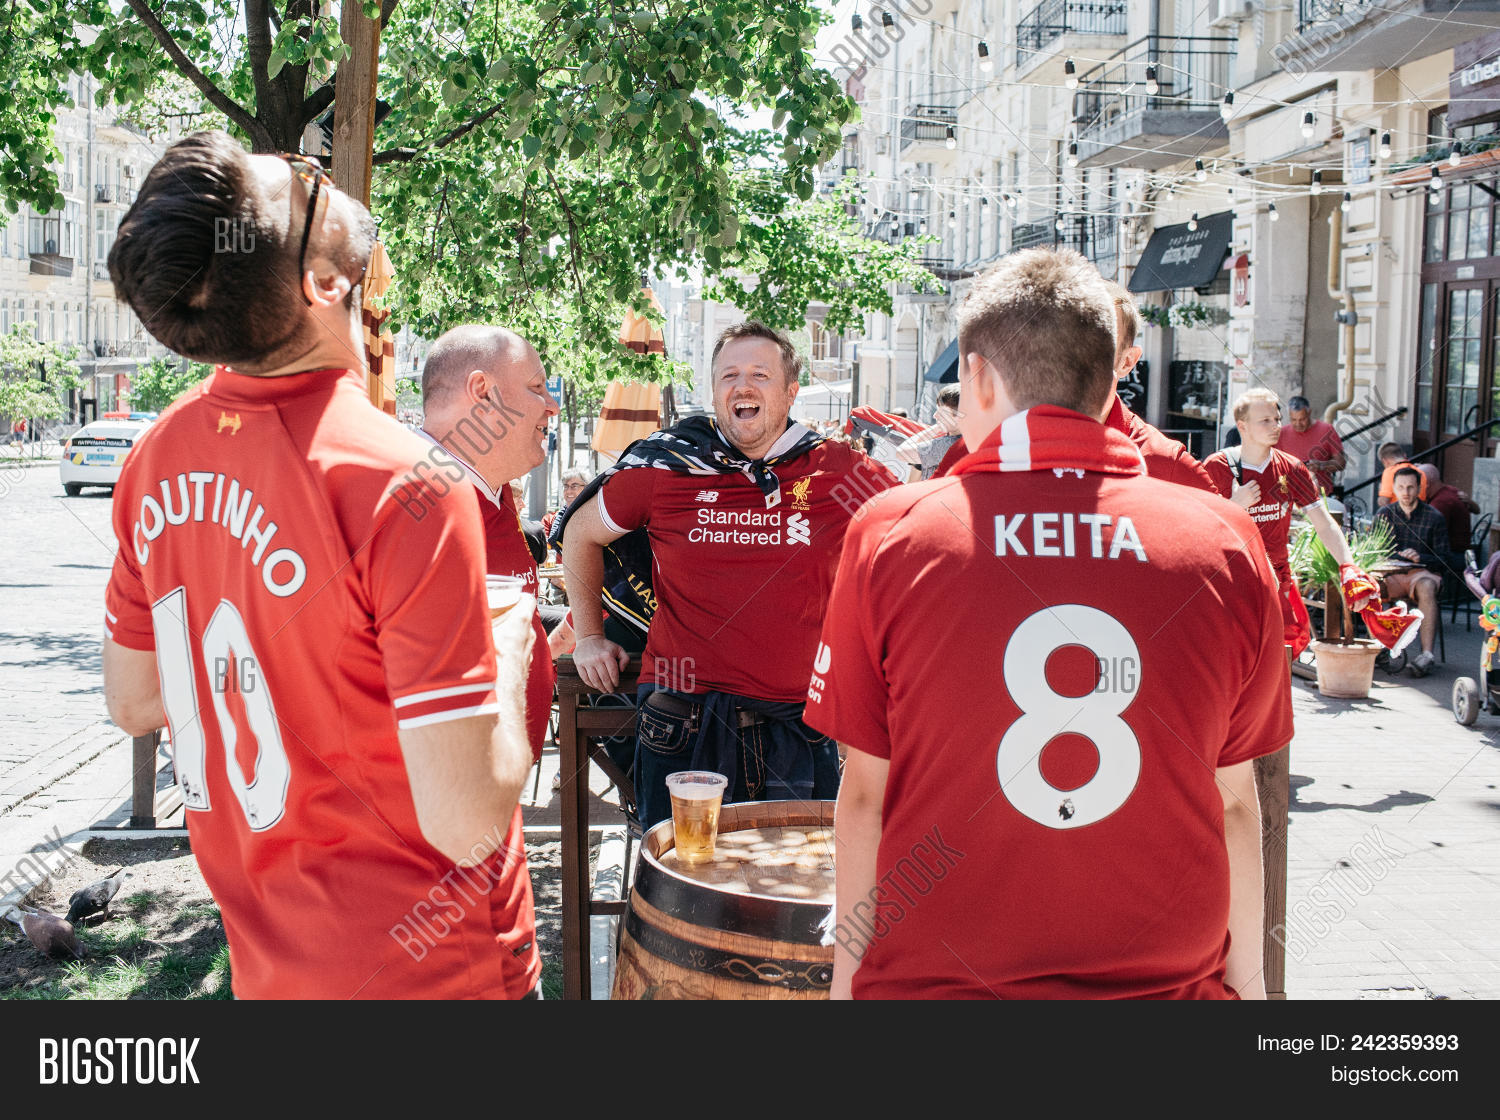 low priced f026b aeff0 Liverpool, Fan Club Image & Photo (Free Trial) | Bigstock